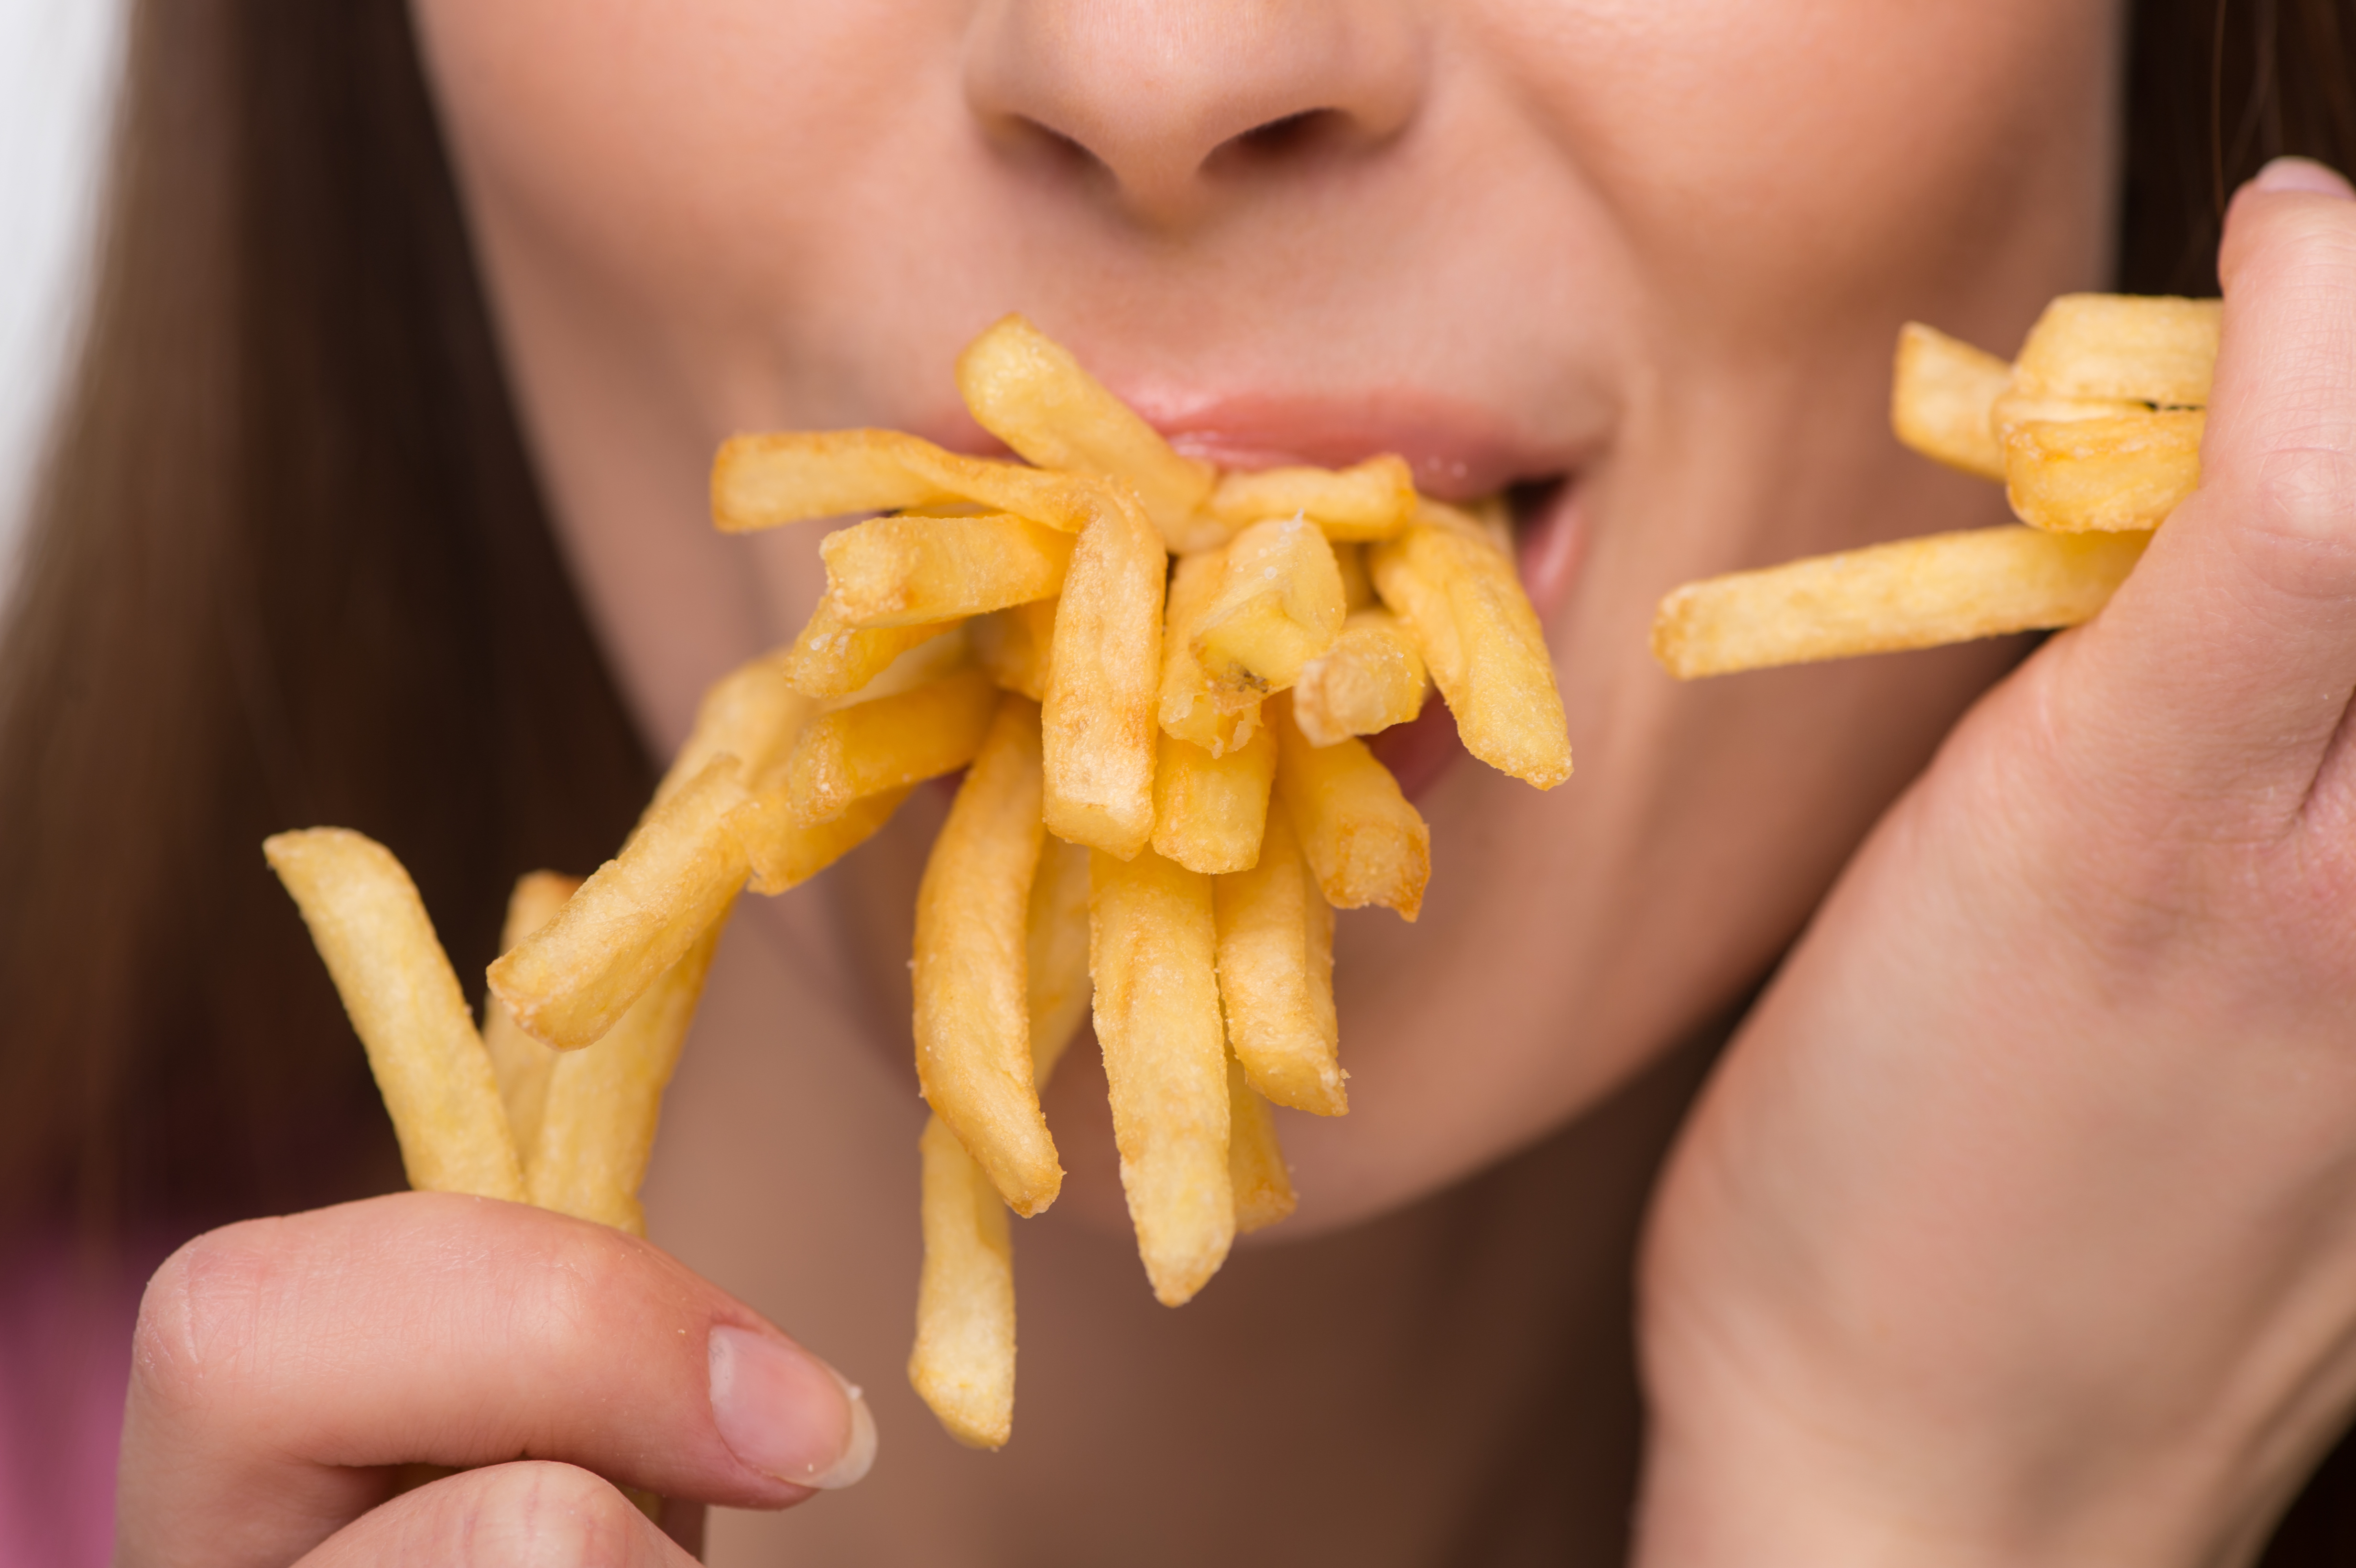 Best to keep French Fries as a